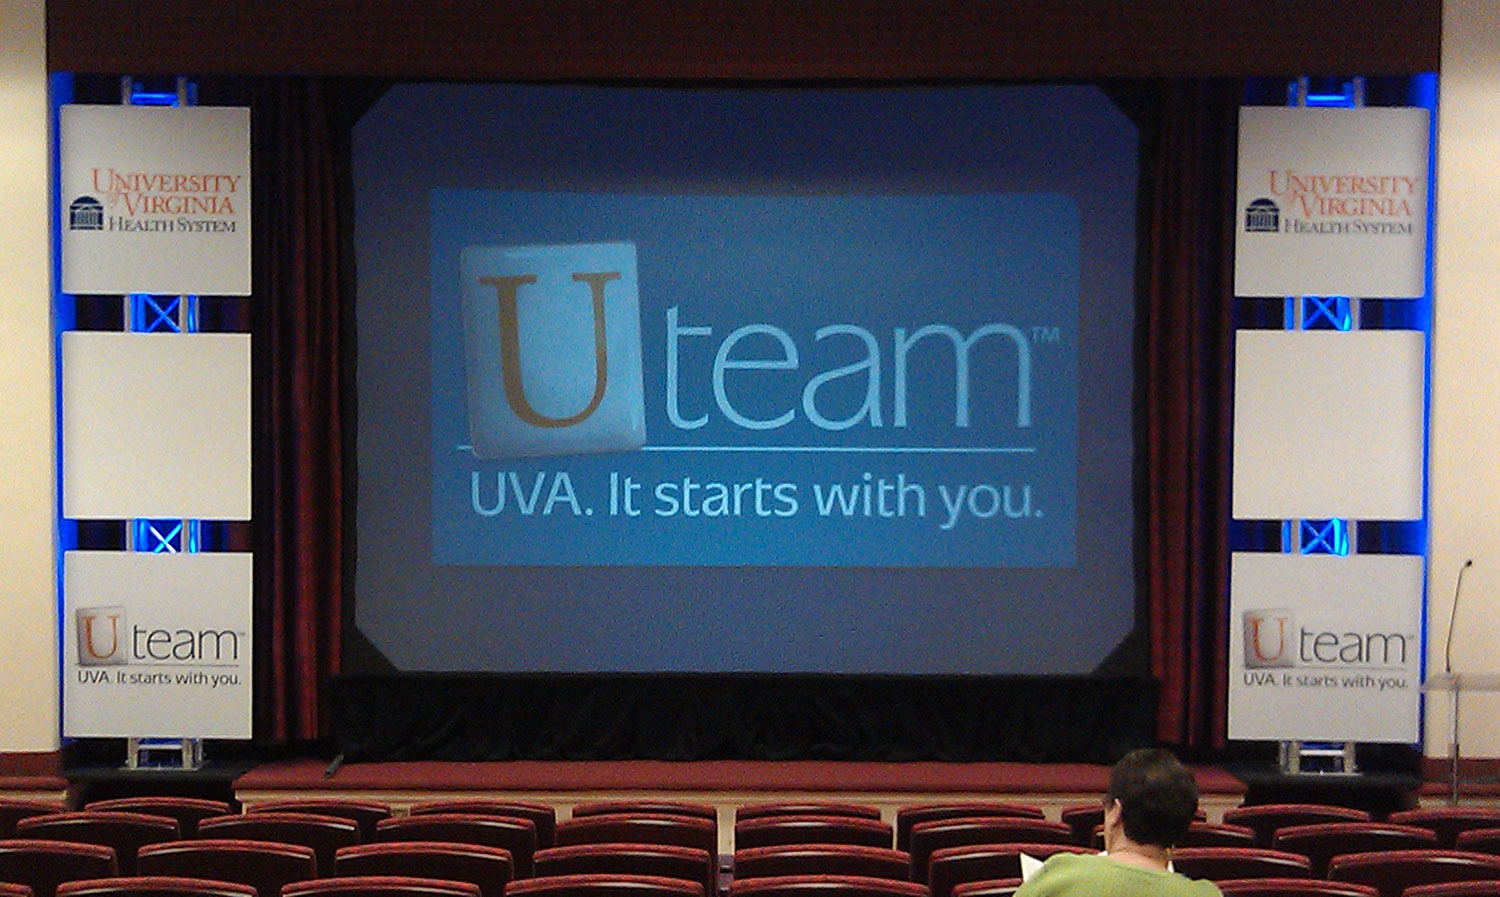 meeting-conference-event-decor-projection-charlottesville.jpg